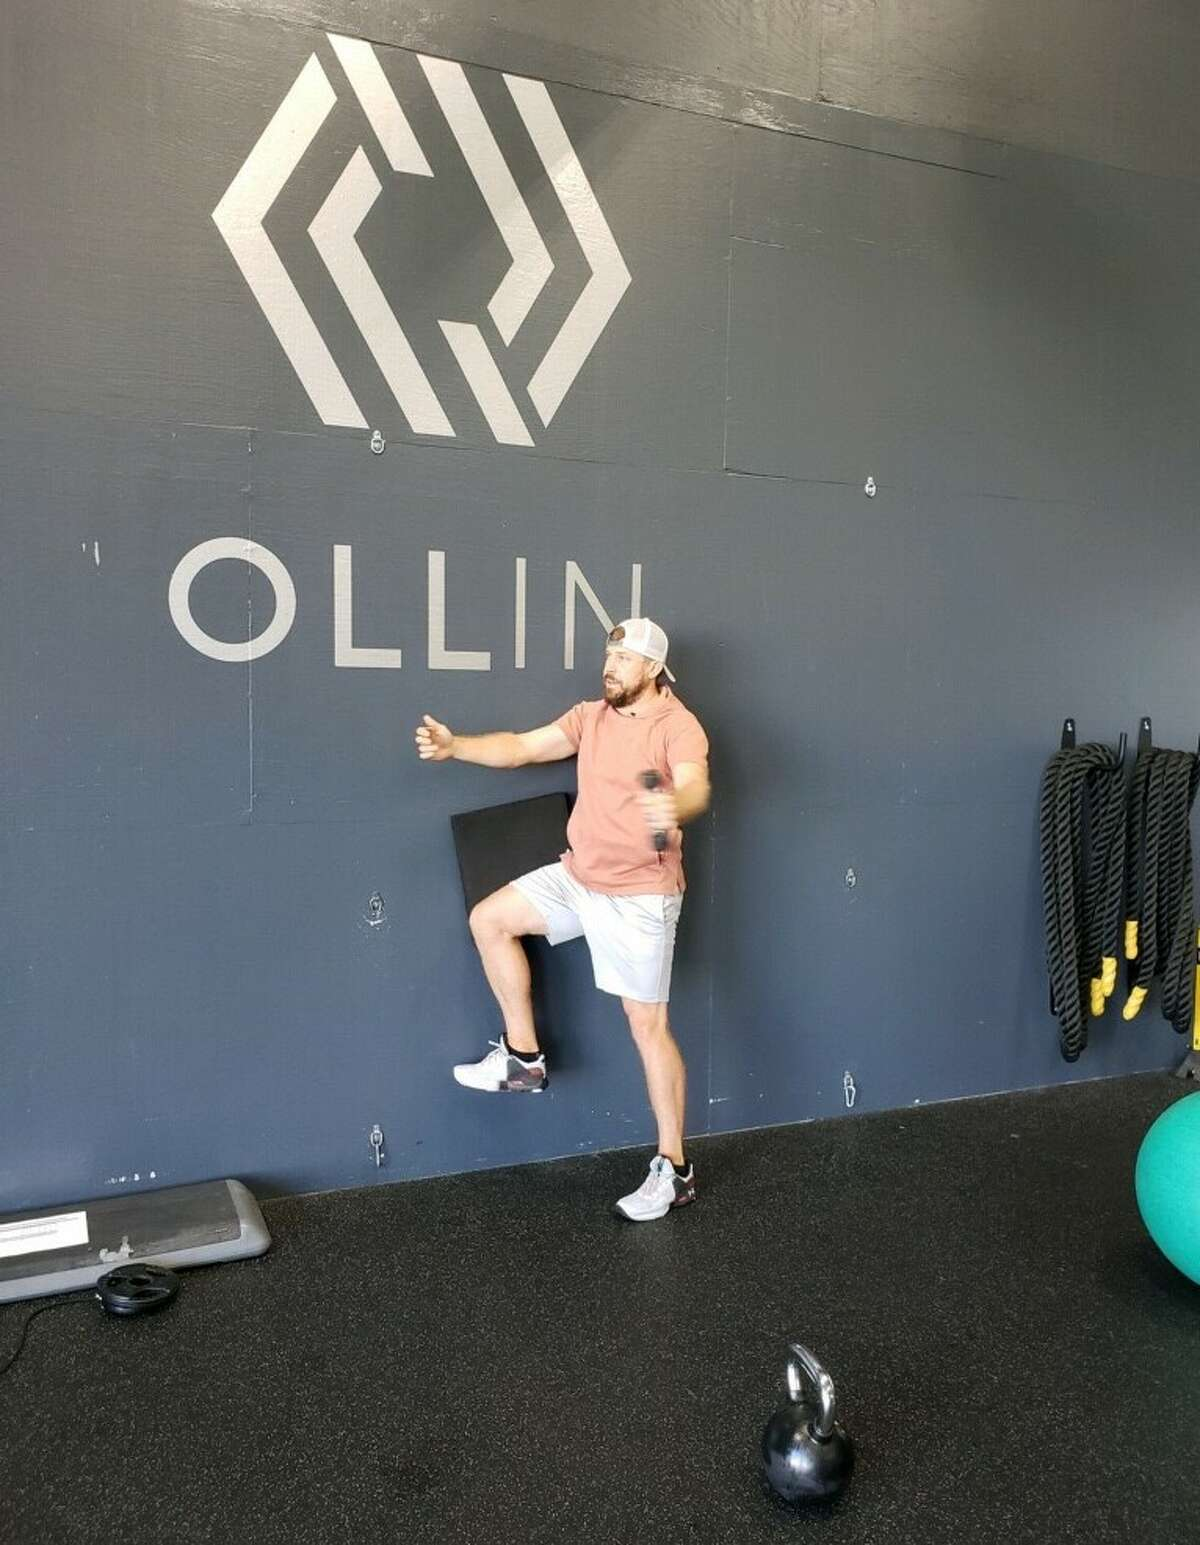 Cleveland Browns quarterback Case Keenum working out at Ollin Athletics and Sports Medicine in Cypress on June 8, 2020.